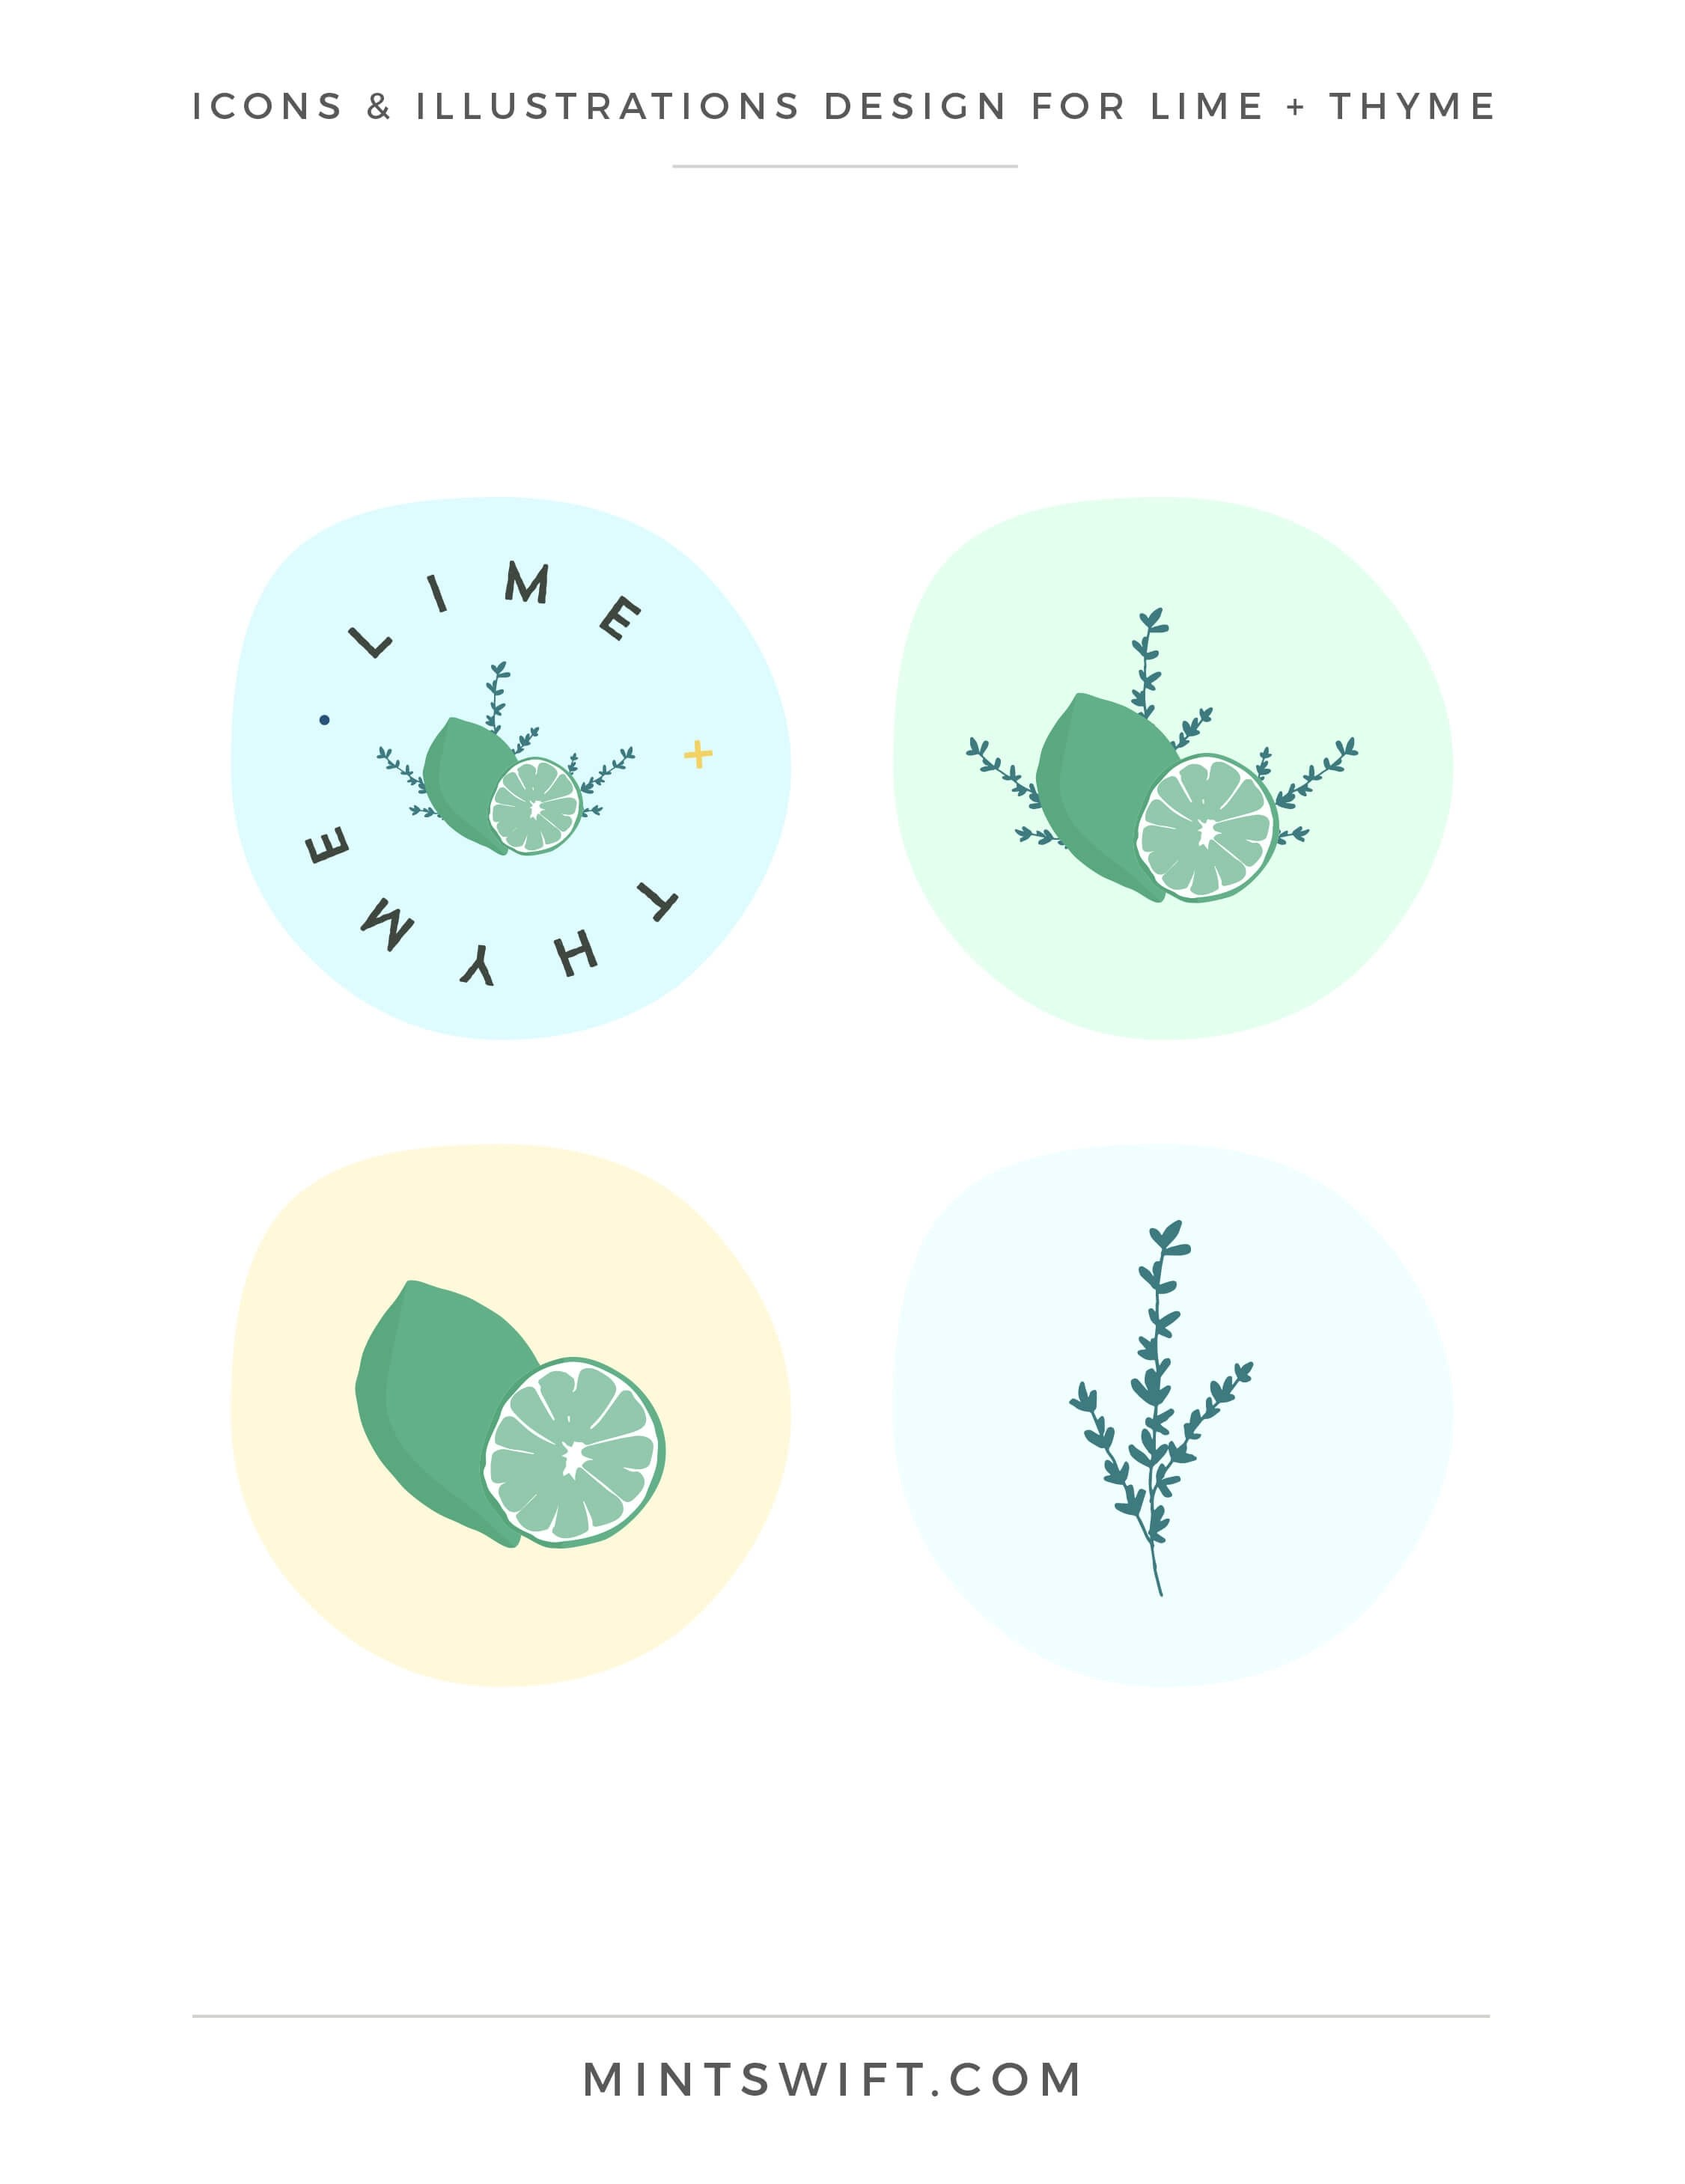 Lime + Thyme - Icons & Illustrations Design - Brand & Website Design - MintSwift